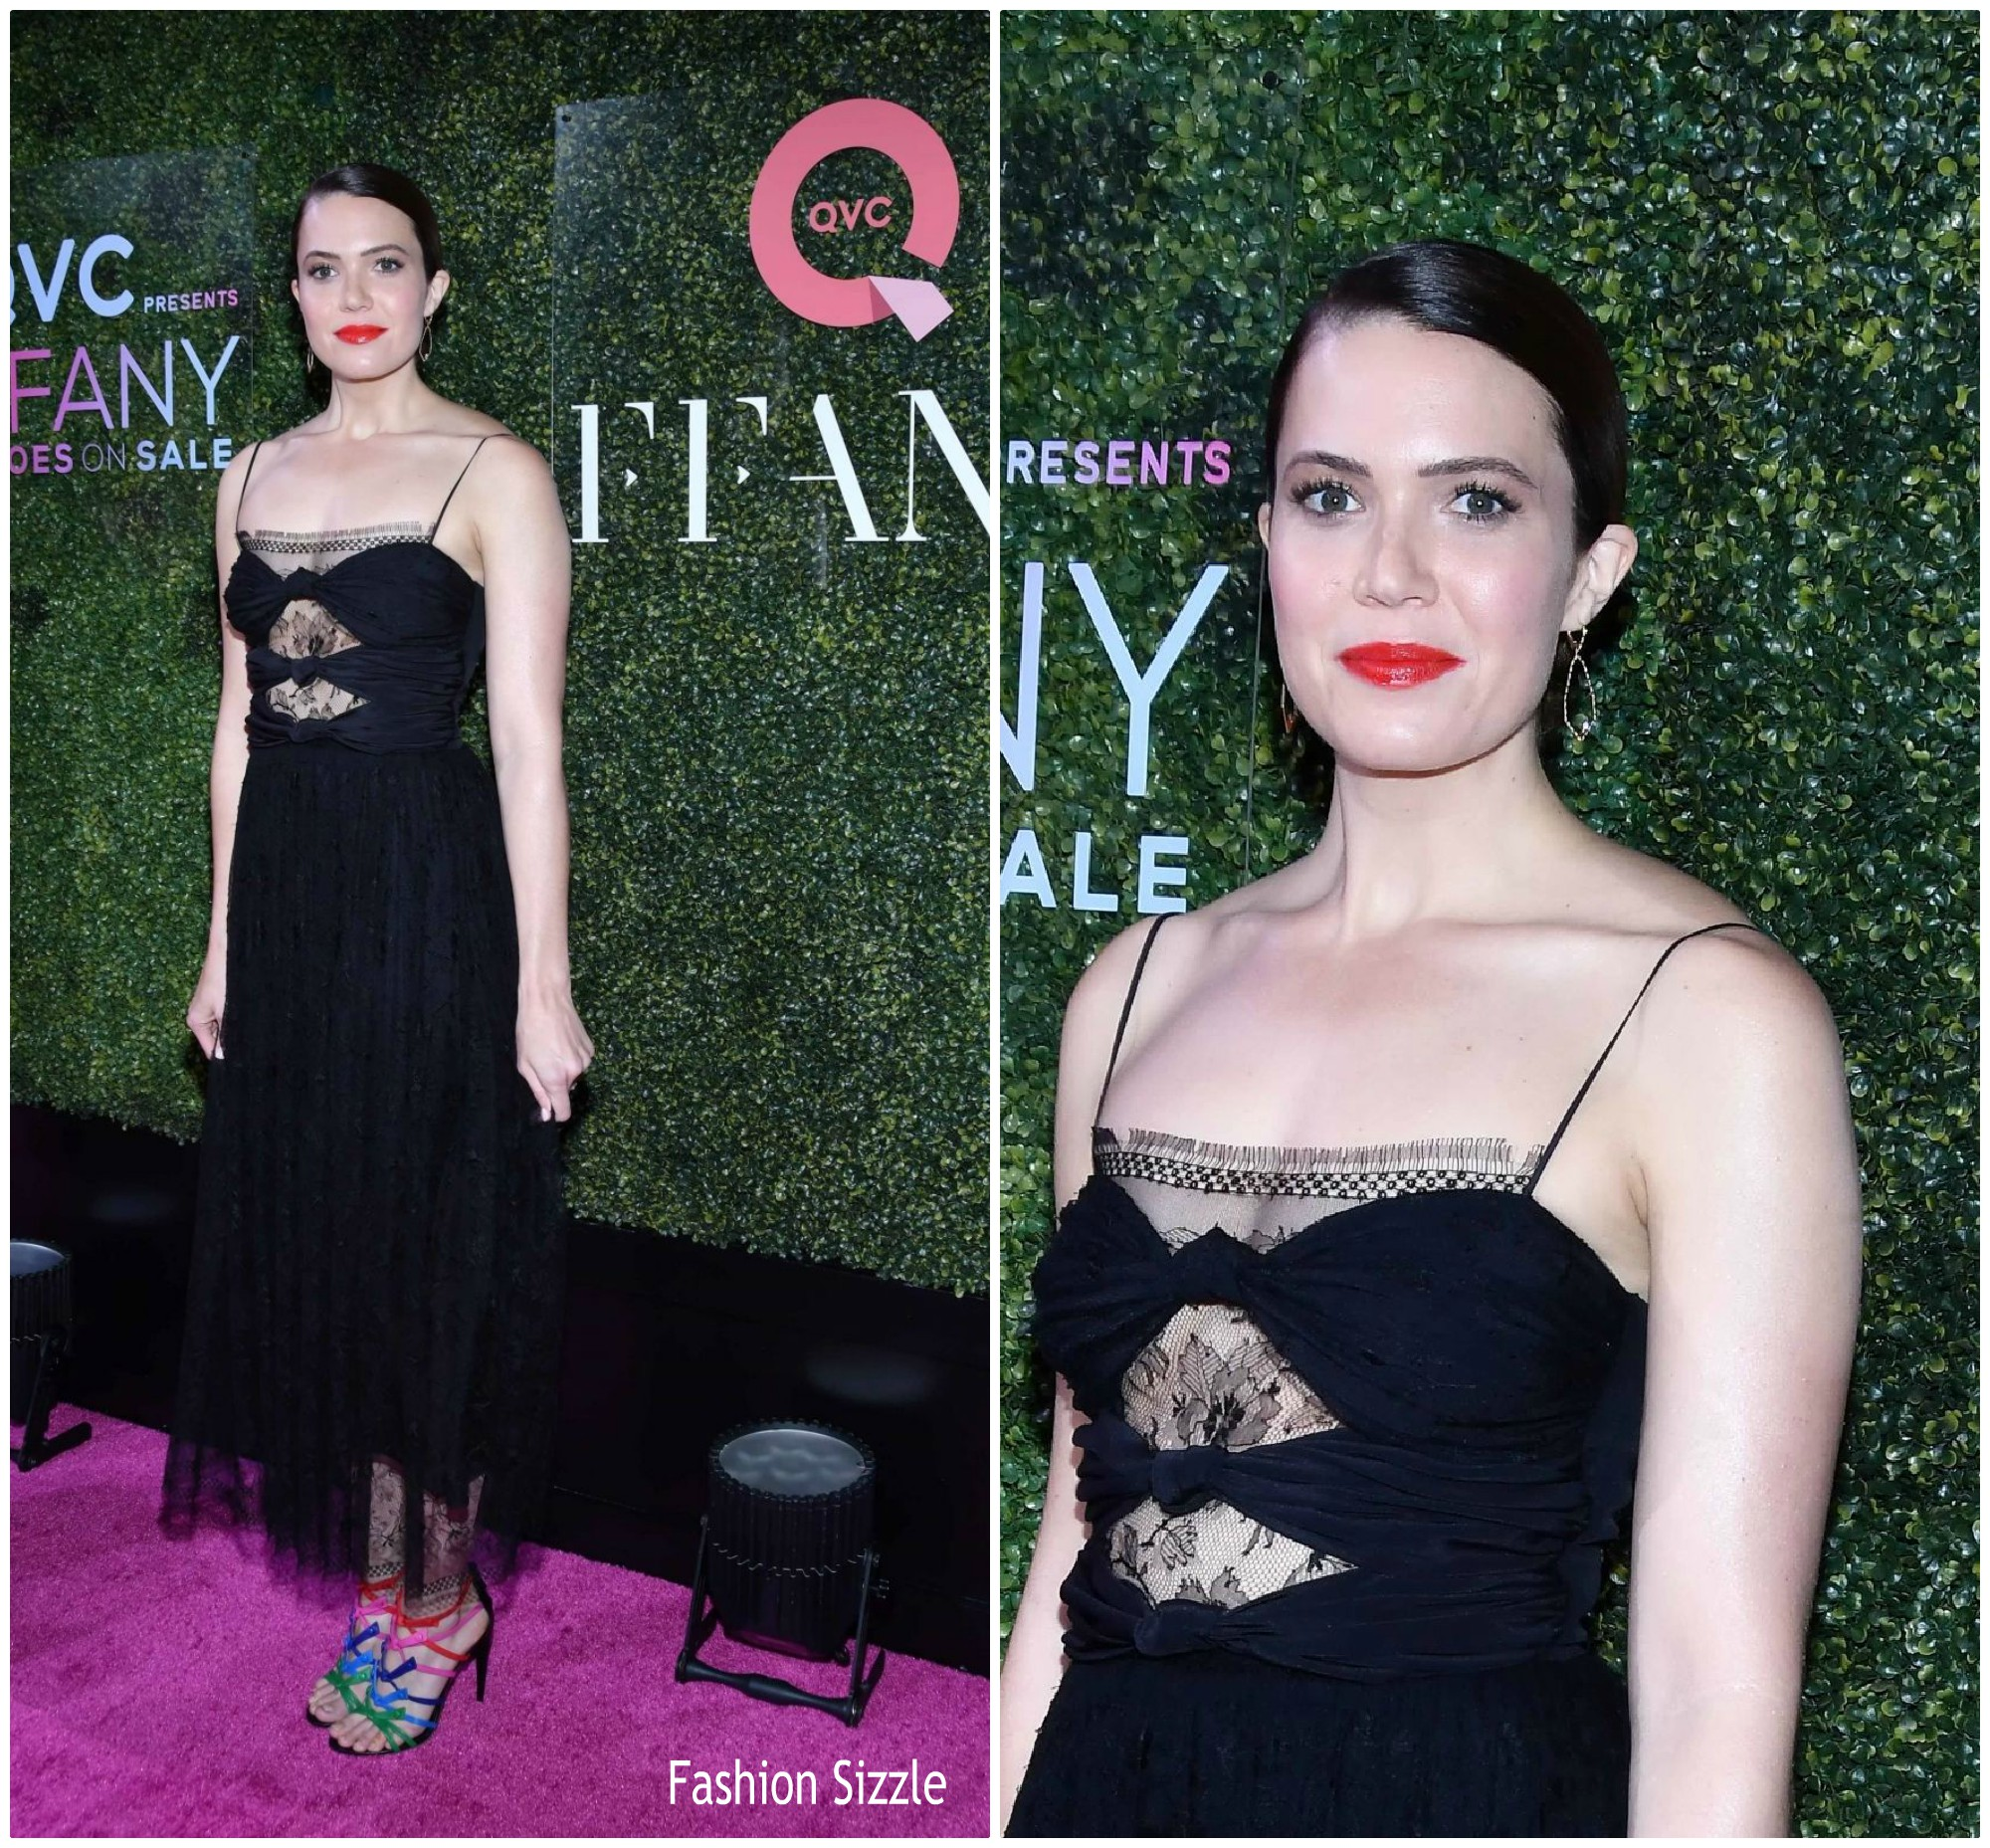 mandy-moore-in-adam-lippes-24th-annual- qvc-presents-ffany-shoes-on-sale-gala-in-new-york